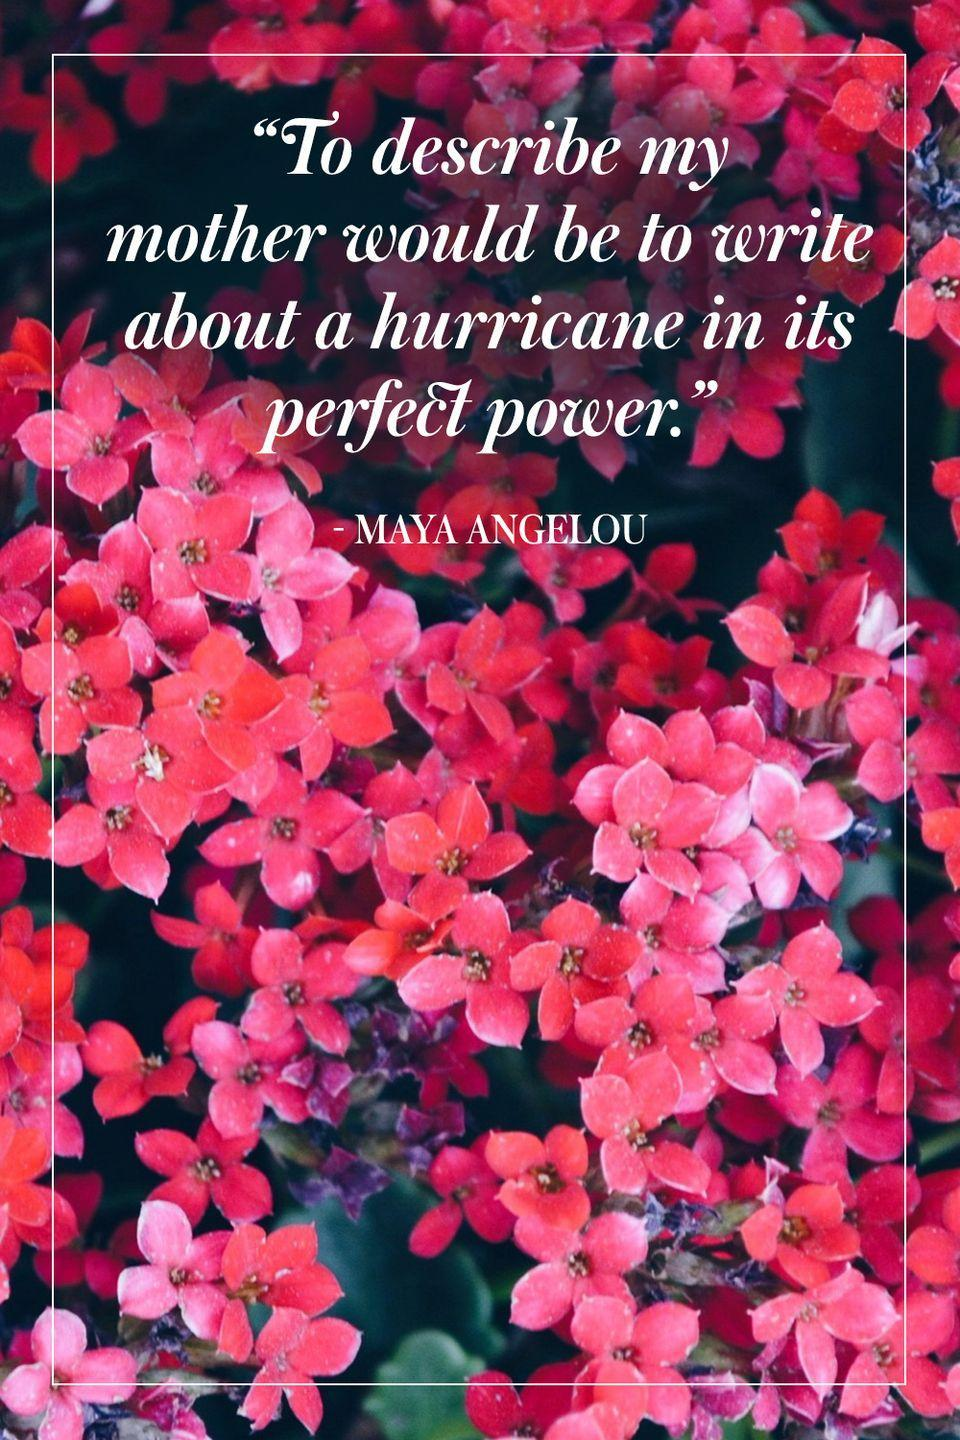 """<p>""""To describe my mother would be to write about a hurricane in its perfect power.""""</p><p>- Maya Angelou</p>"""